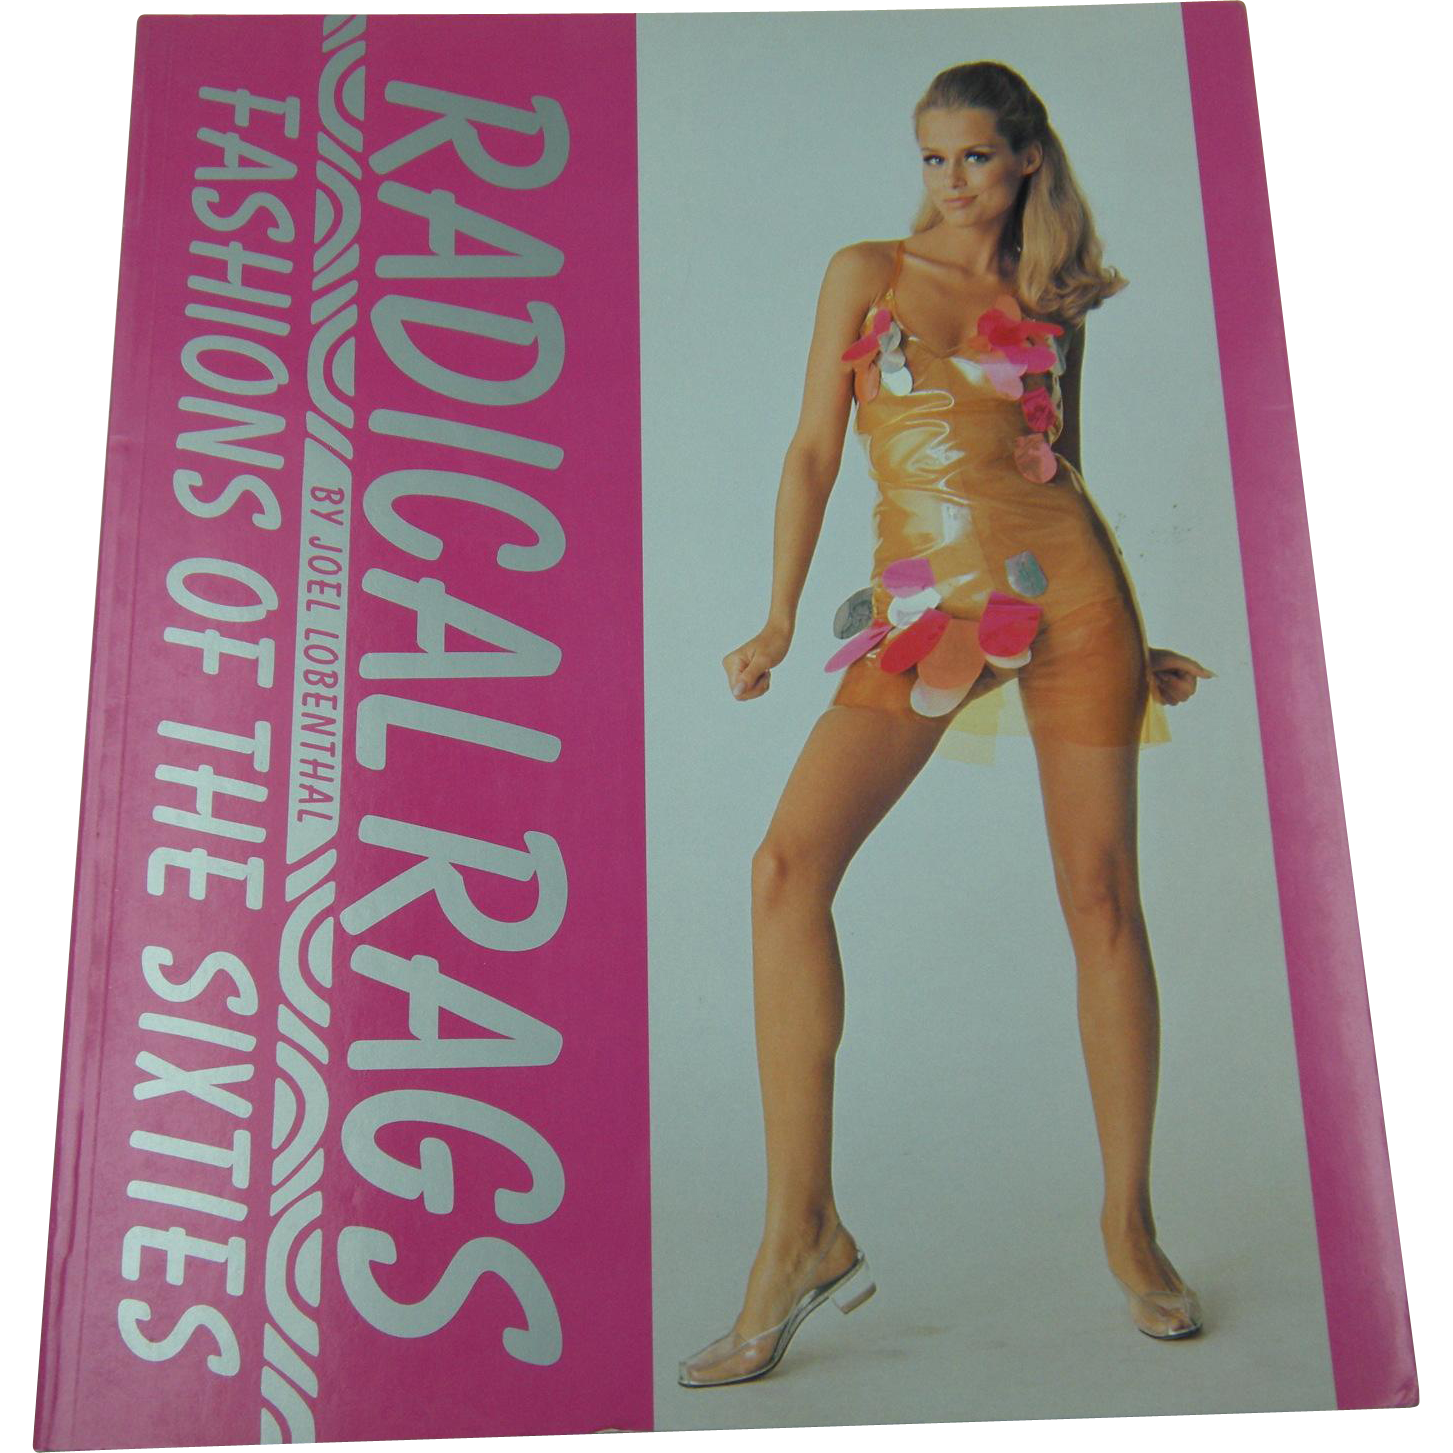 """Radical Rags"" Book about Fashions of the 1960's by Joel Lobenthal"